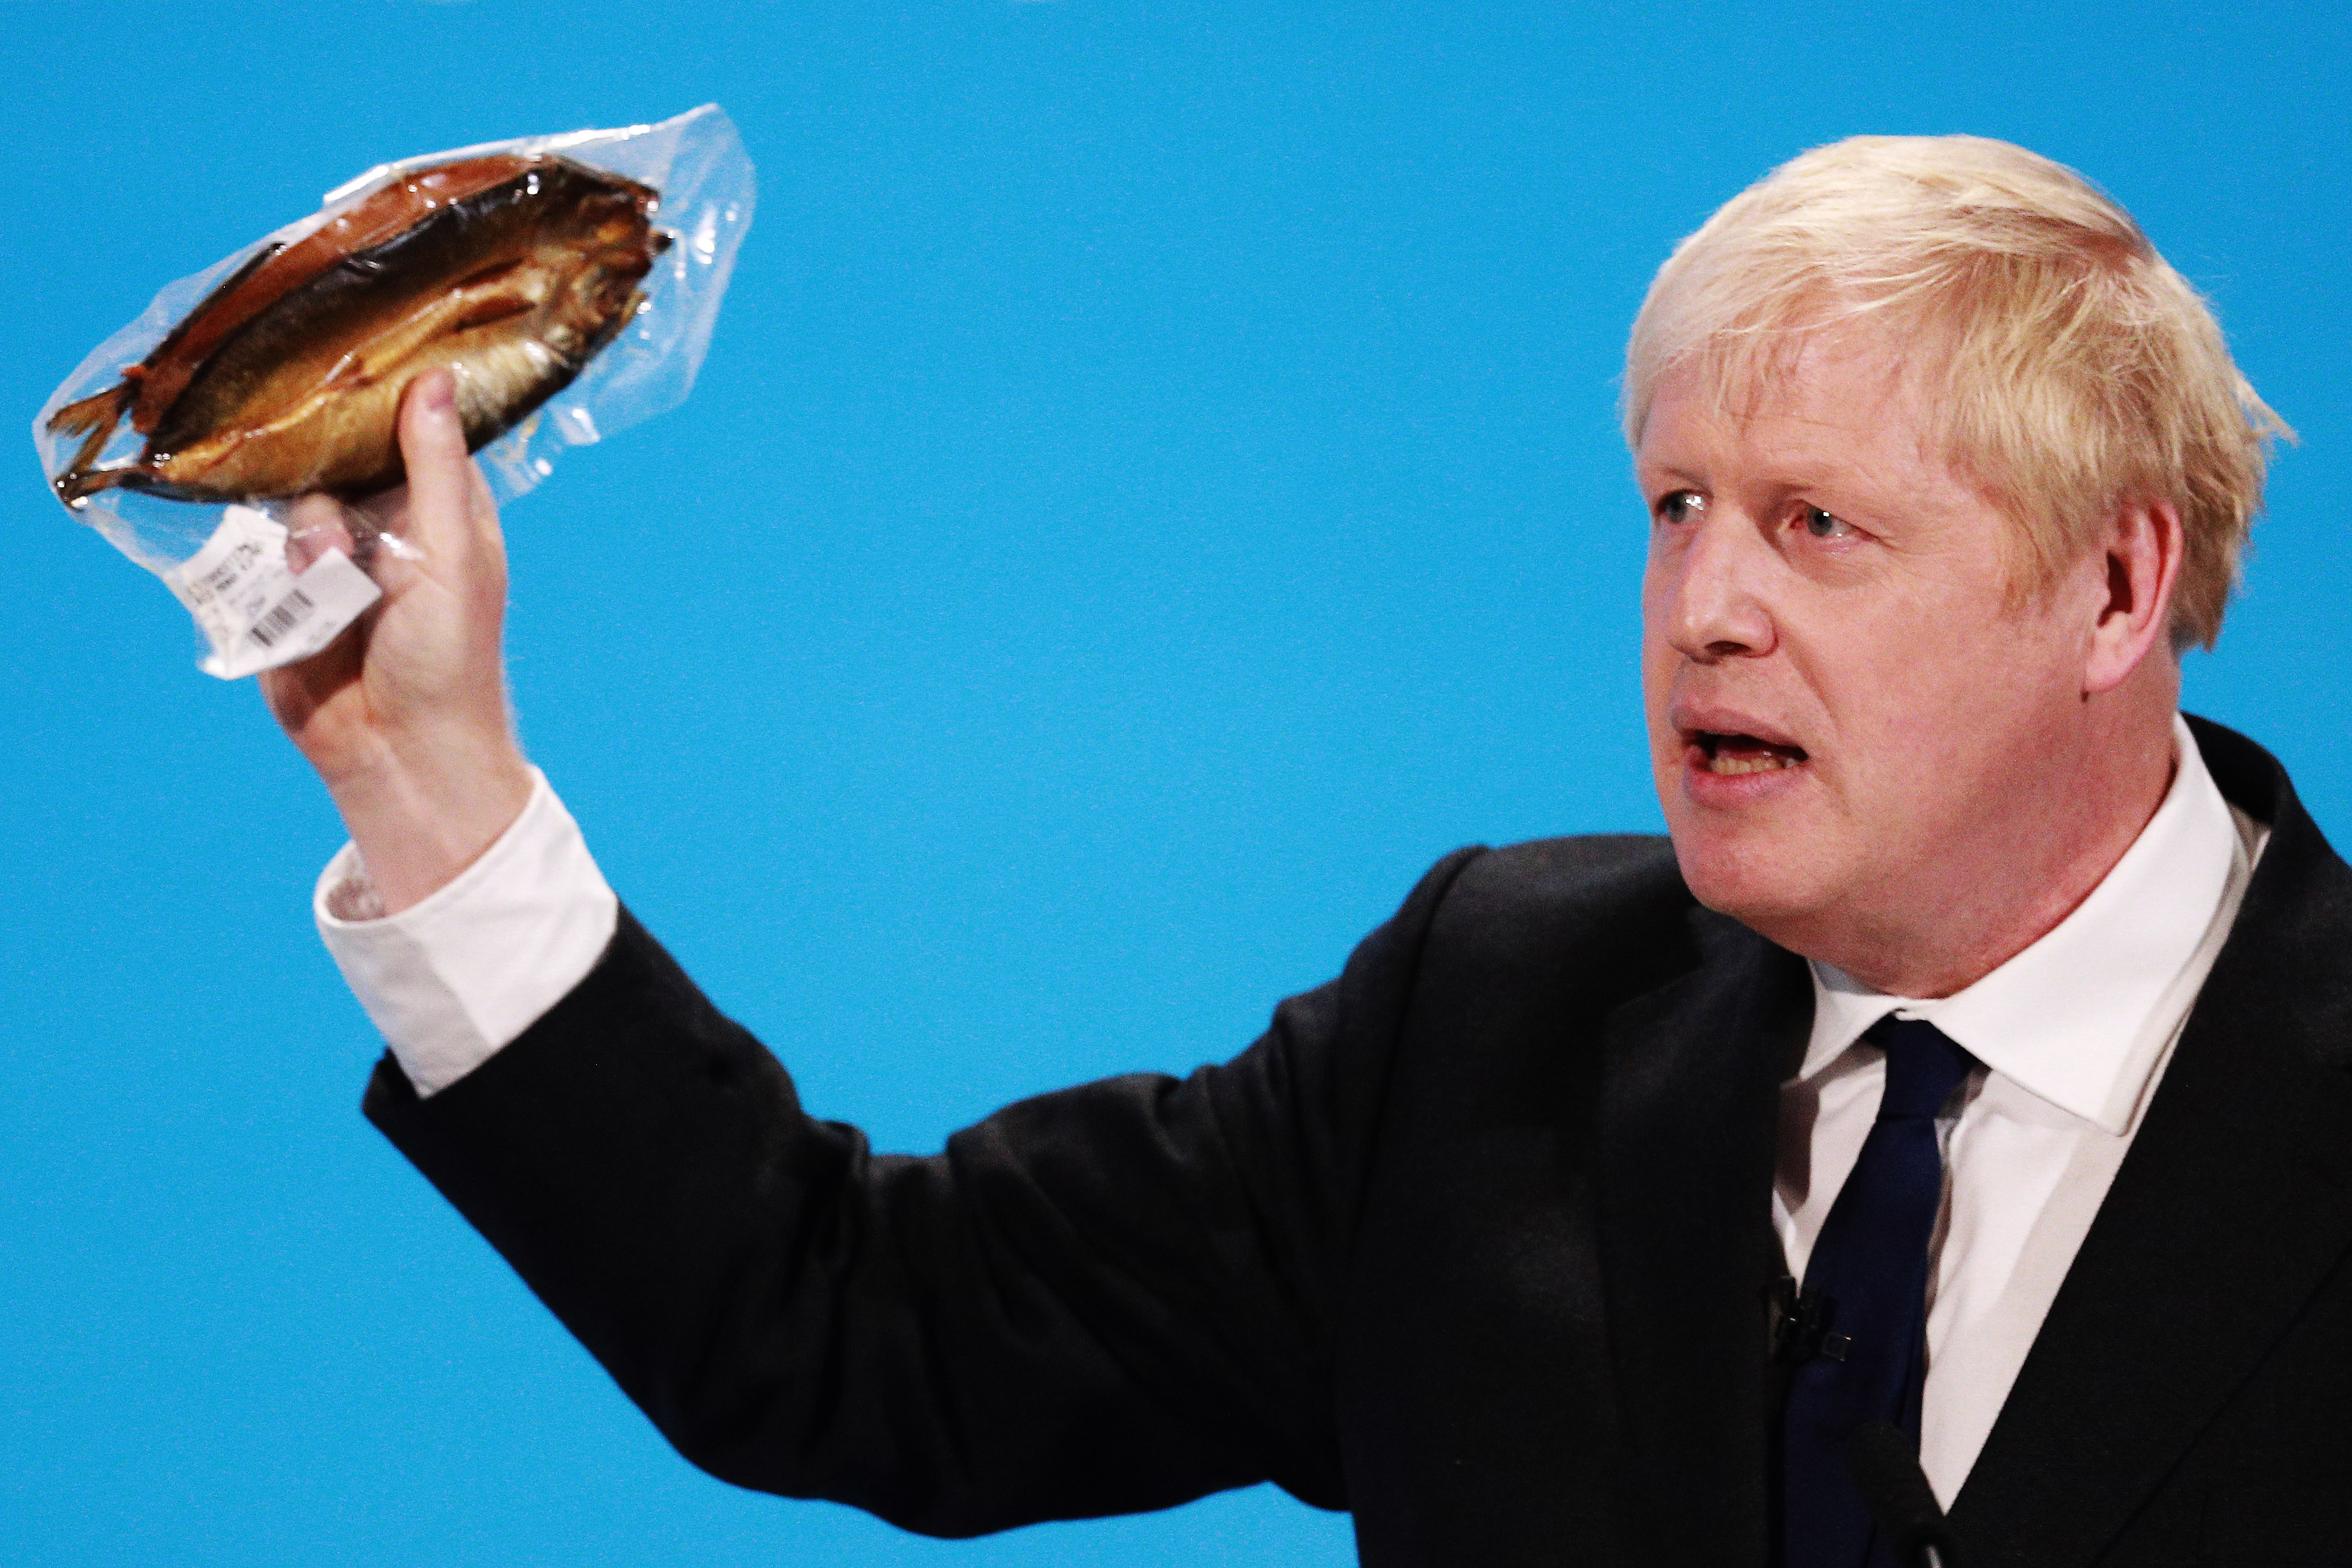 Why Is Would-Be PM Boris Johnson Brandishing a Smoked Fish in Public?